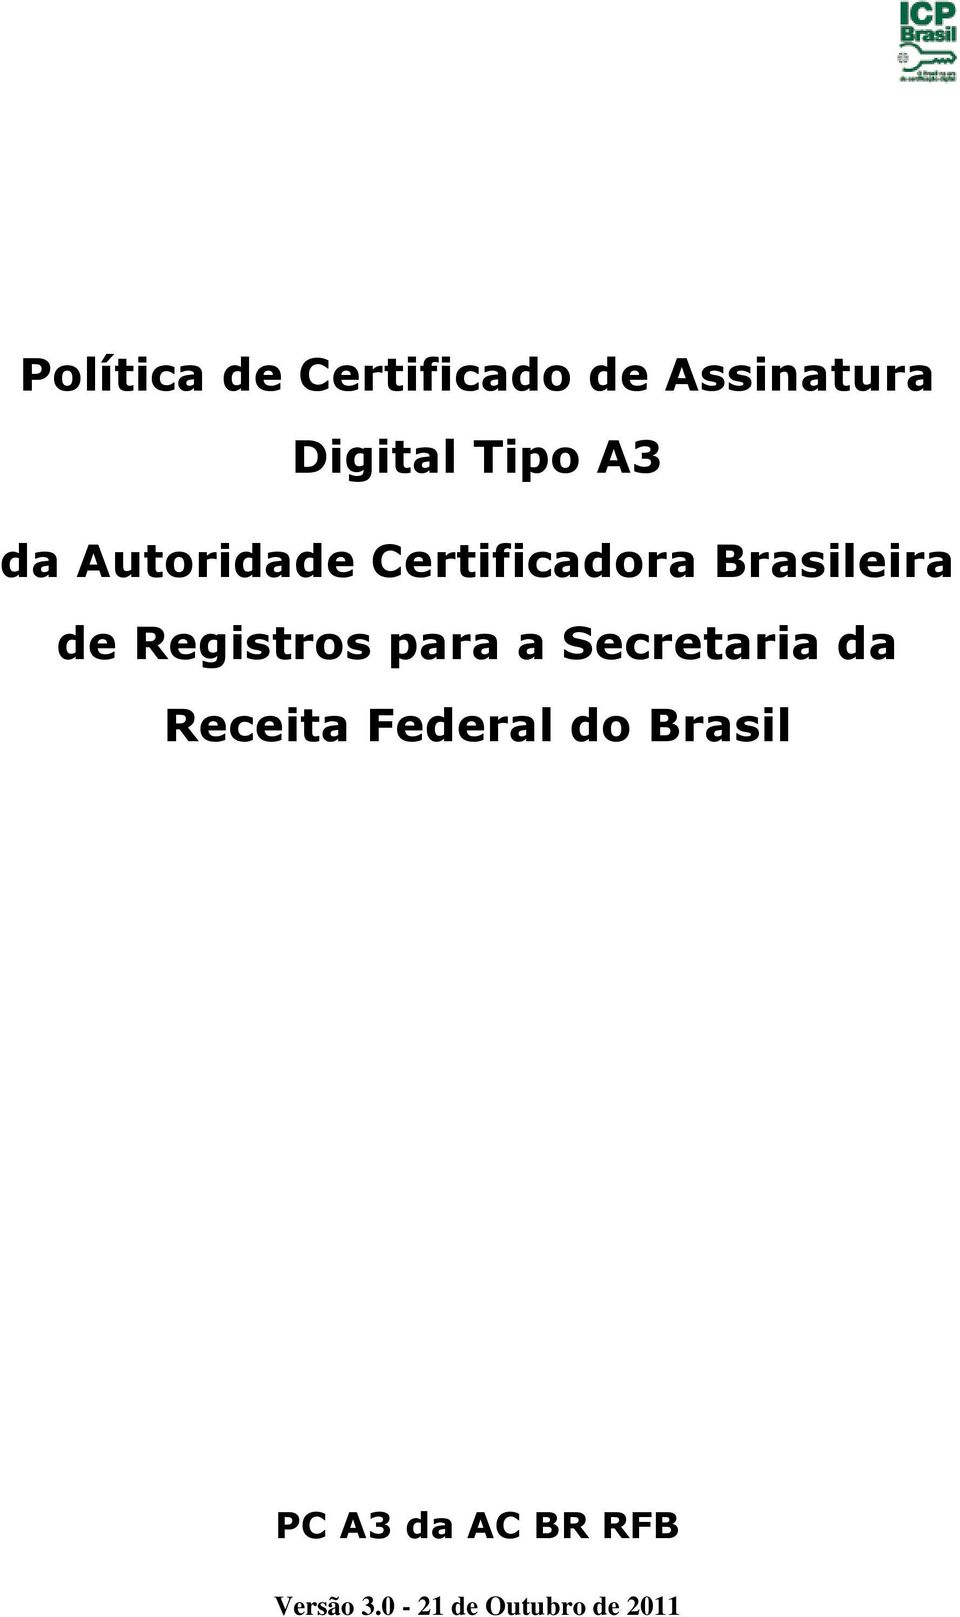 Registros para a Secretaria da Receita Federal do